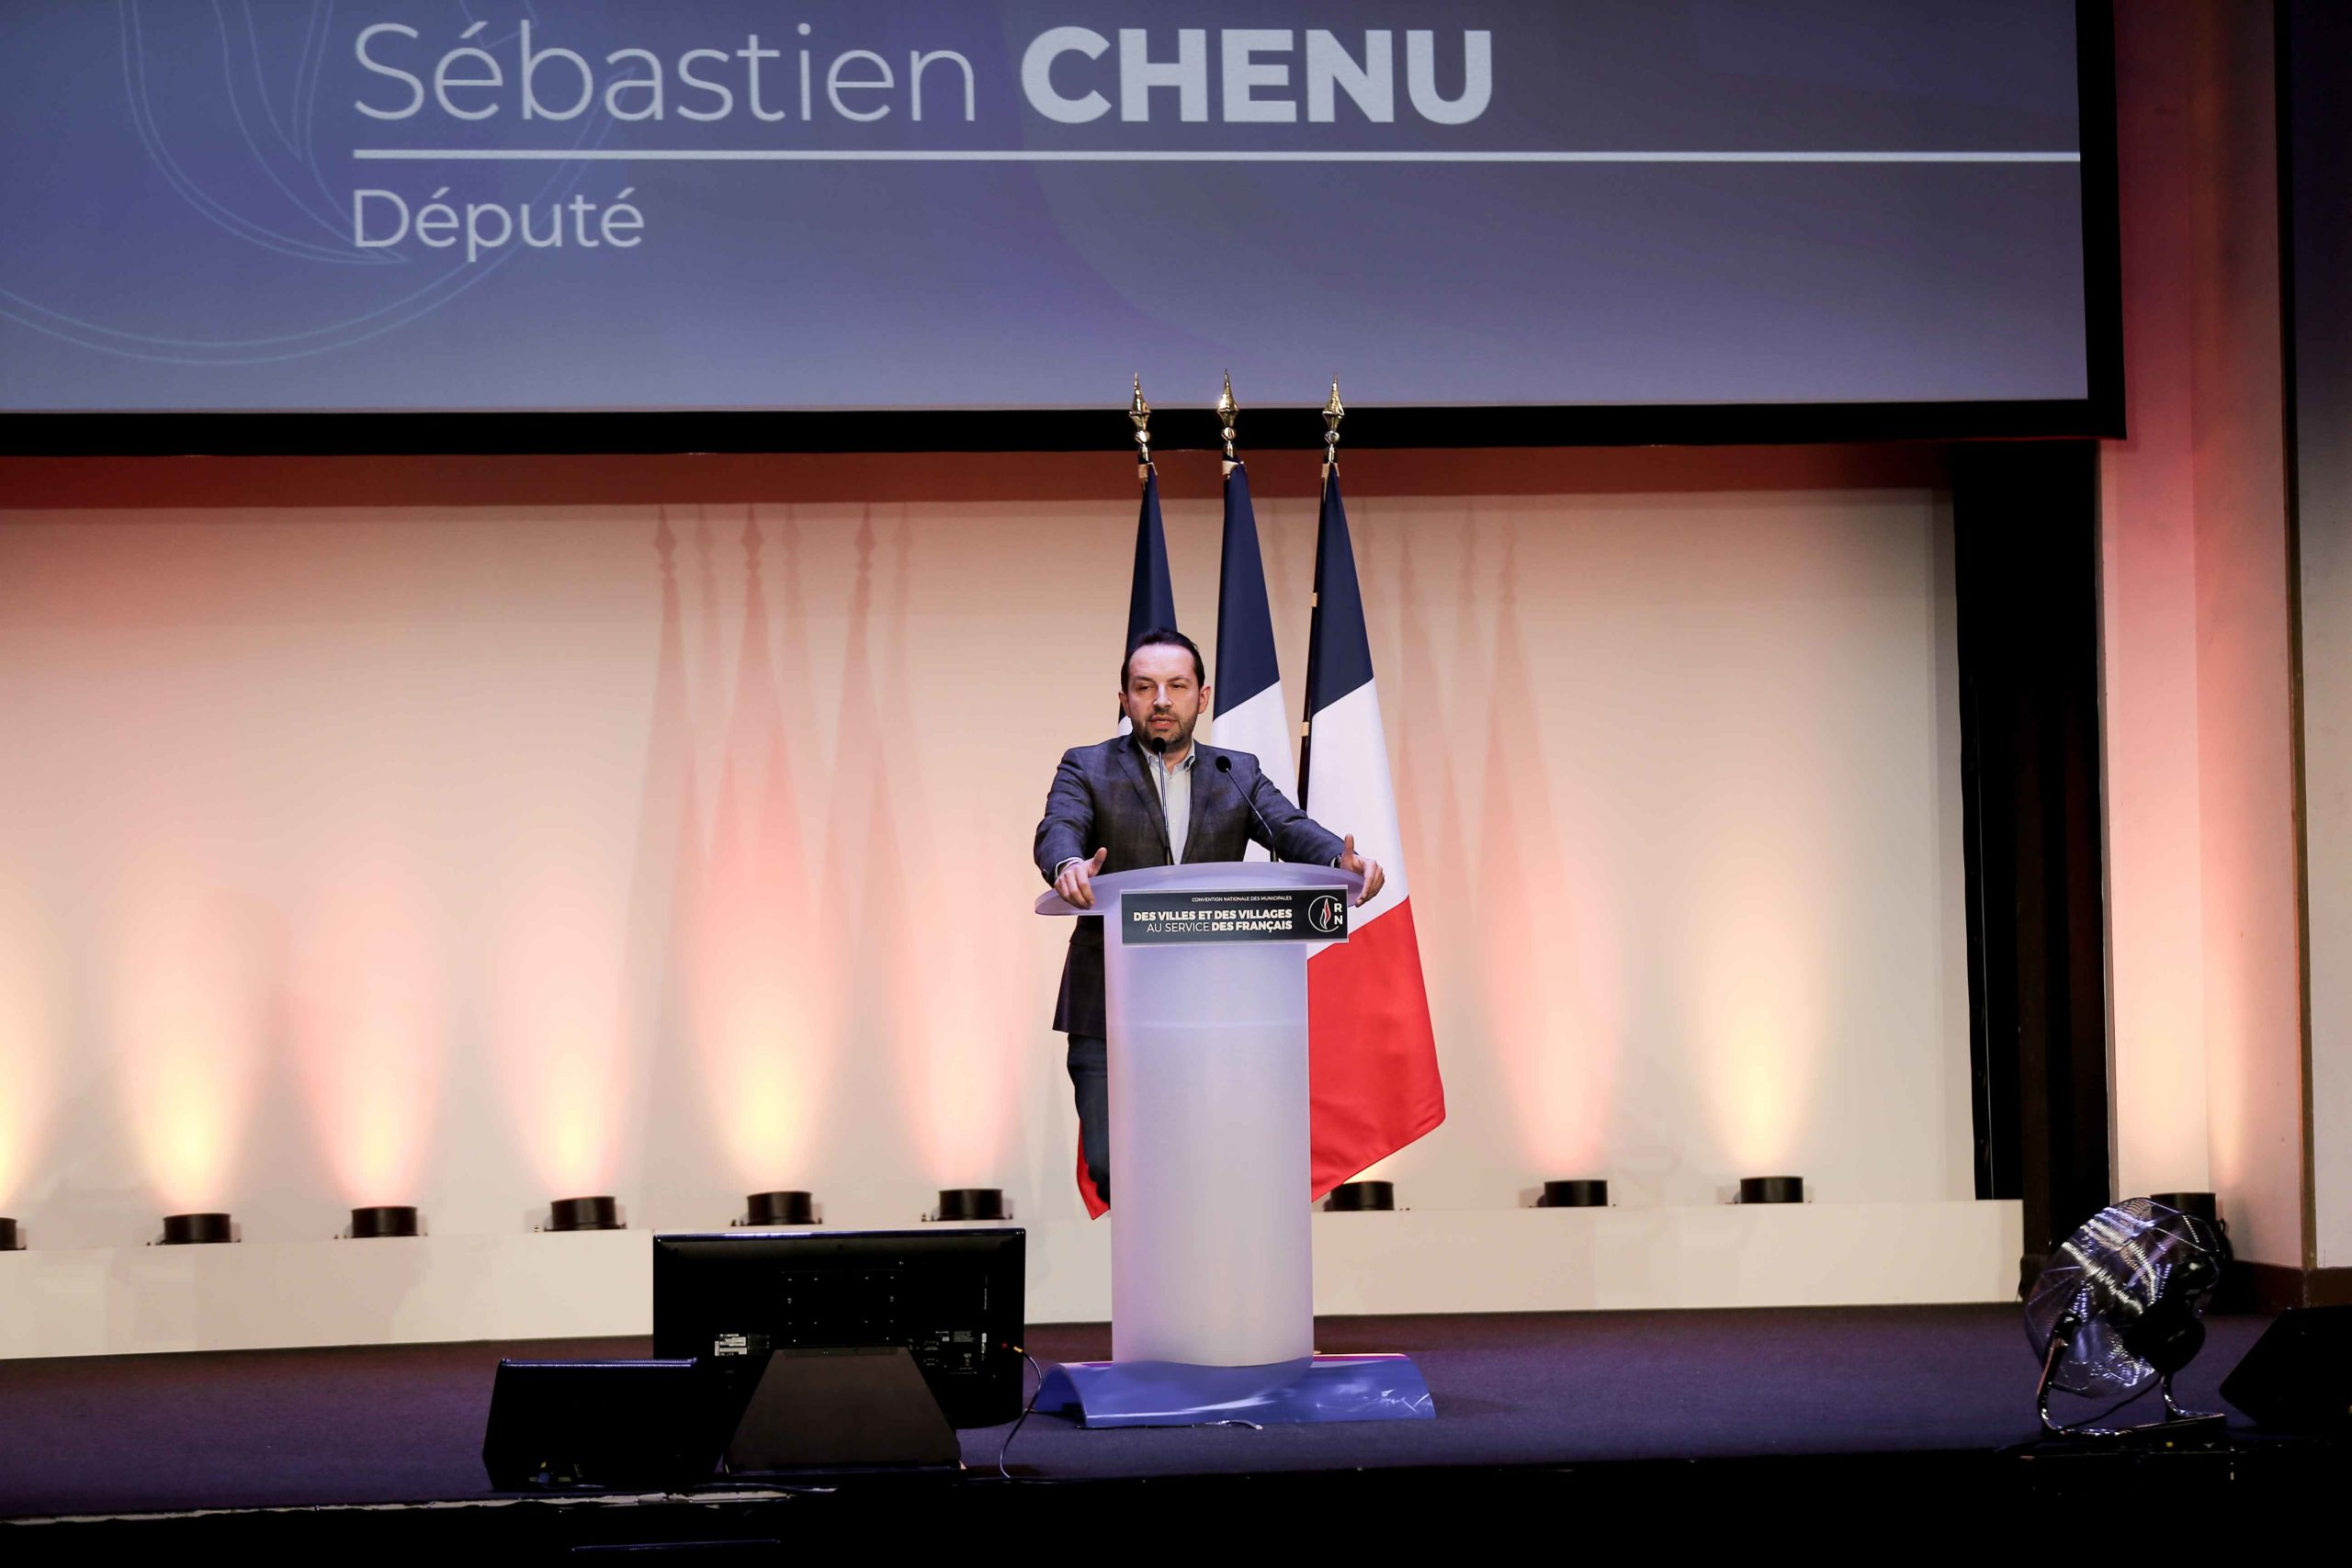 Sébastien Chenu, French far-right Rassemblement National (RN) party member and Member of the Parliament, speaks in Paris, on January 12, 2020, during a meeting to launch the RN campaign candidates for the next municipal elections.  The 2020 French municip